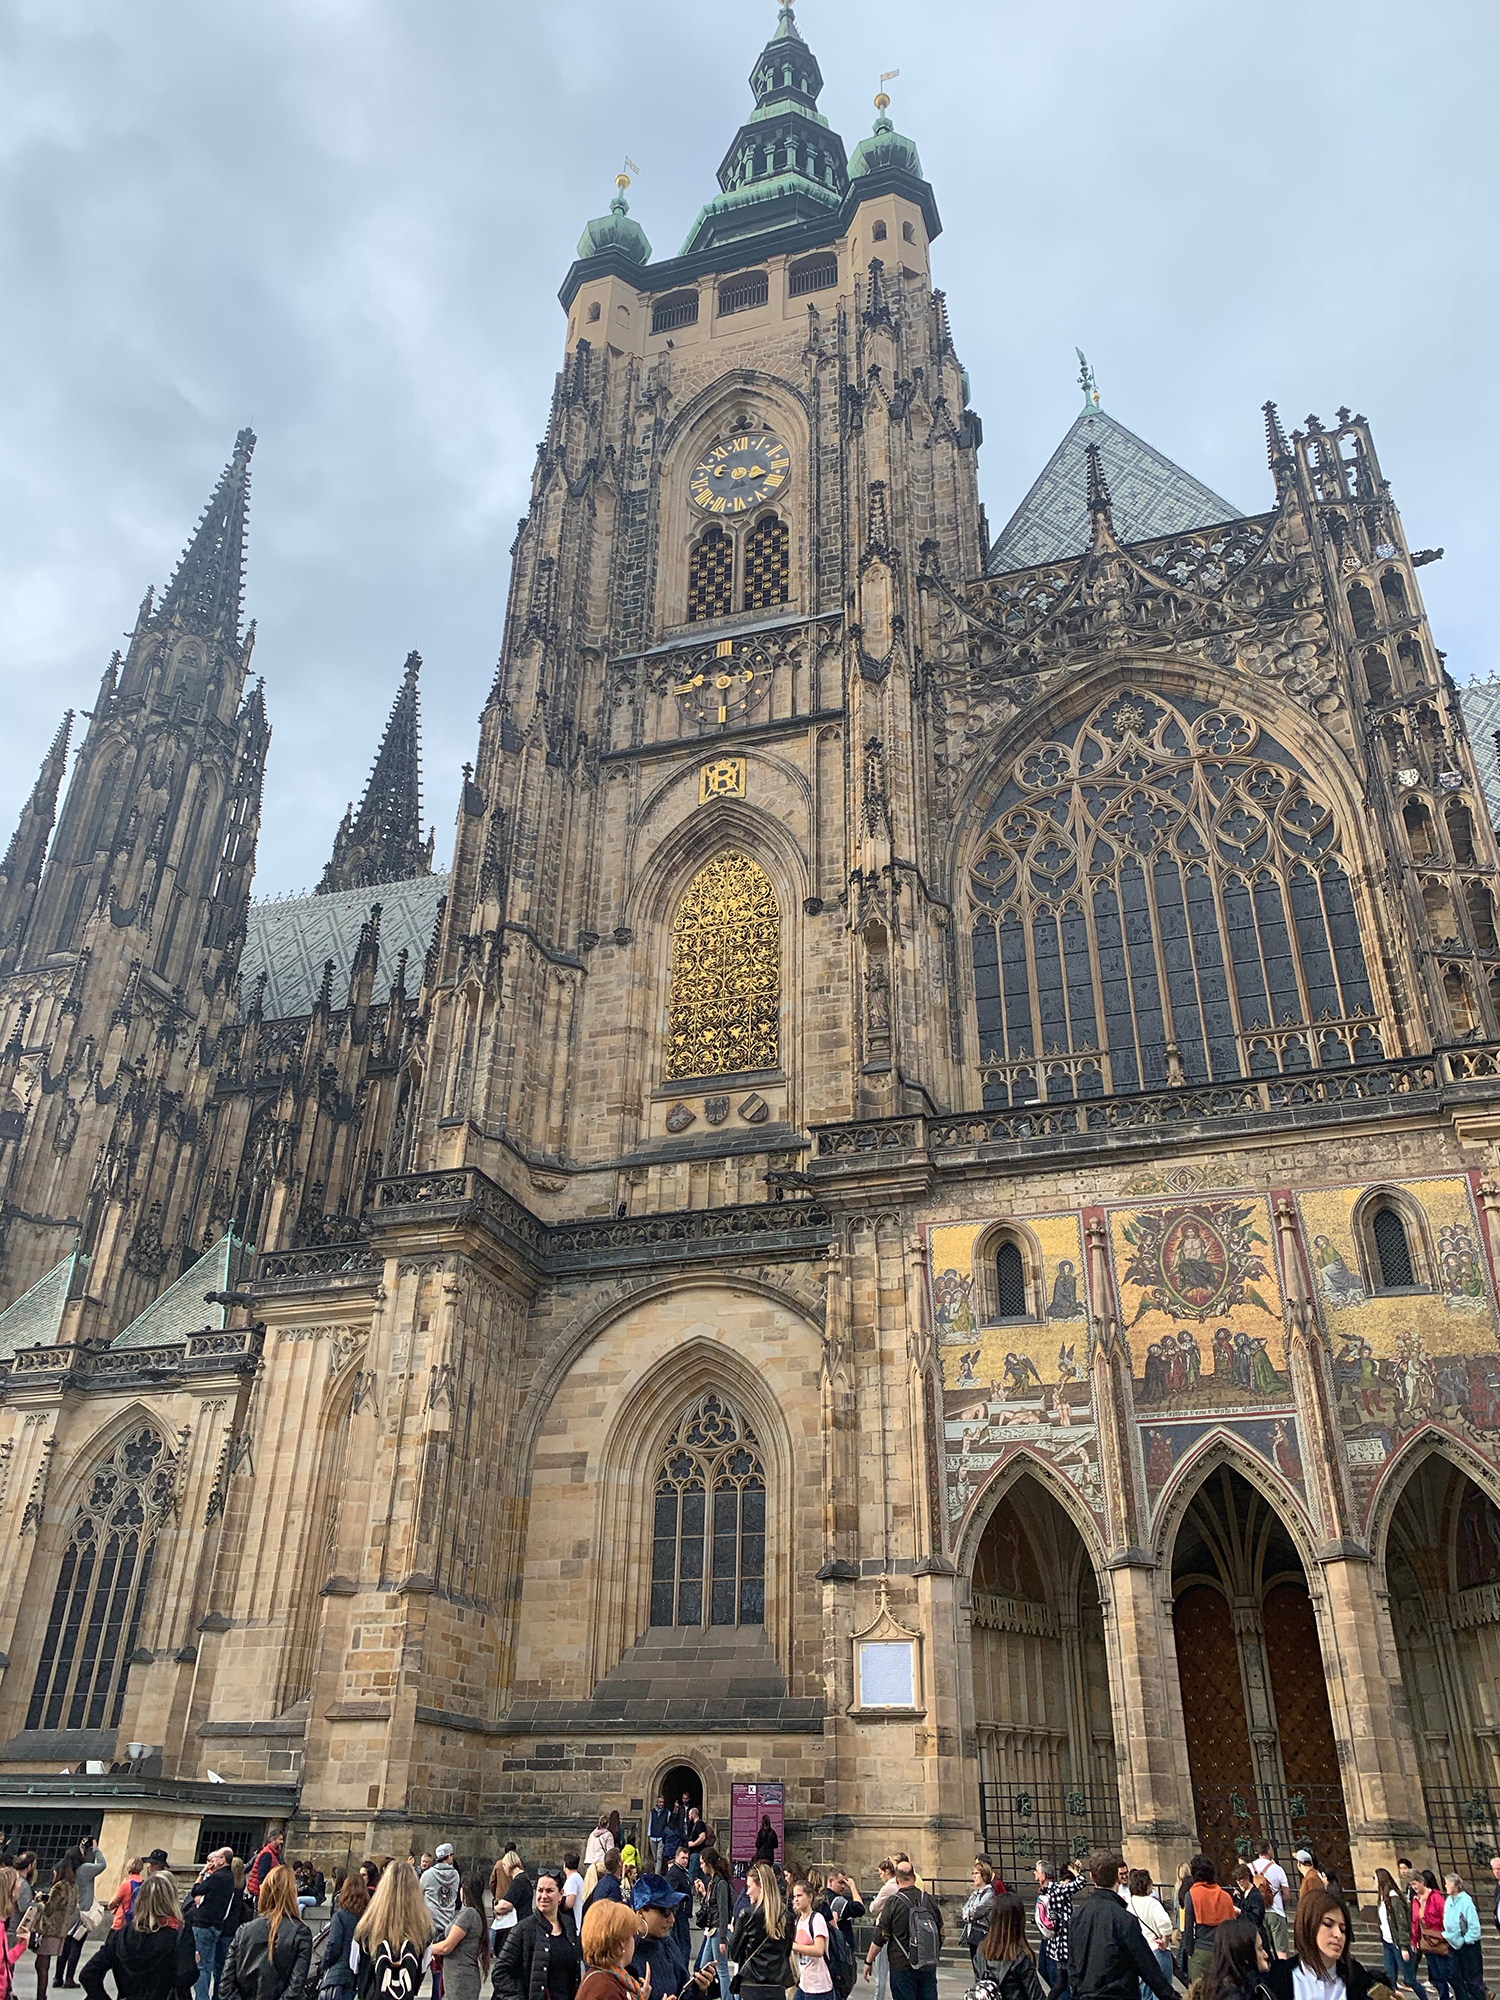 a very large gothic castle in prague